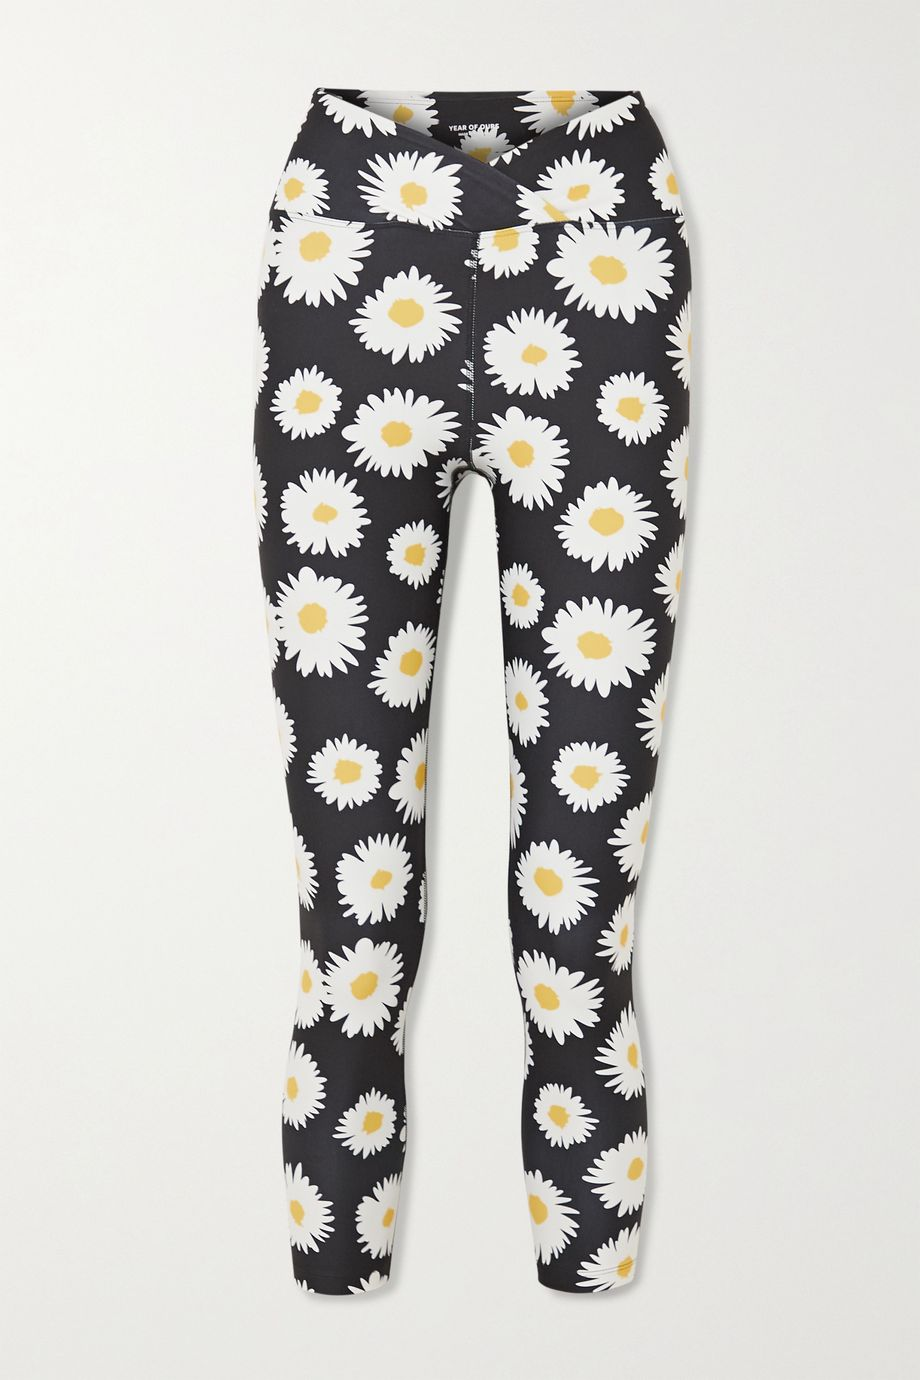 Year of Ours Daisy Veronica floral-print stretch leggings